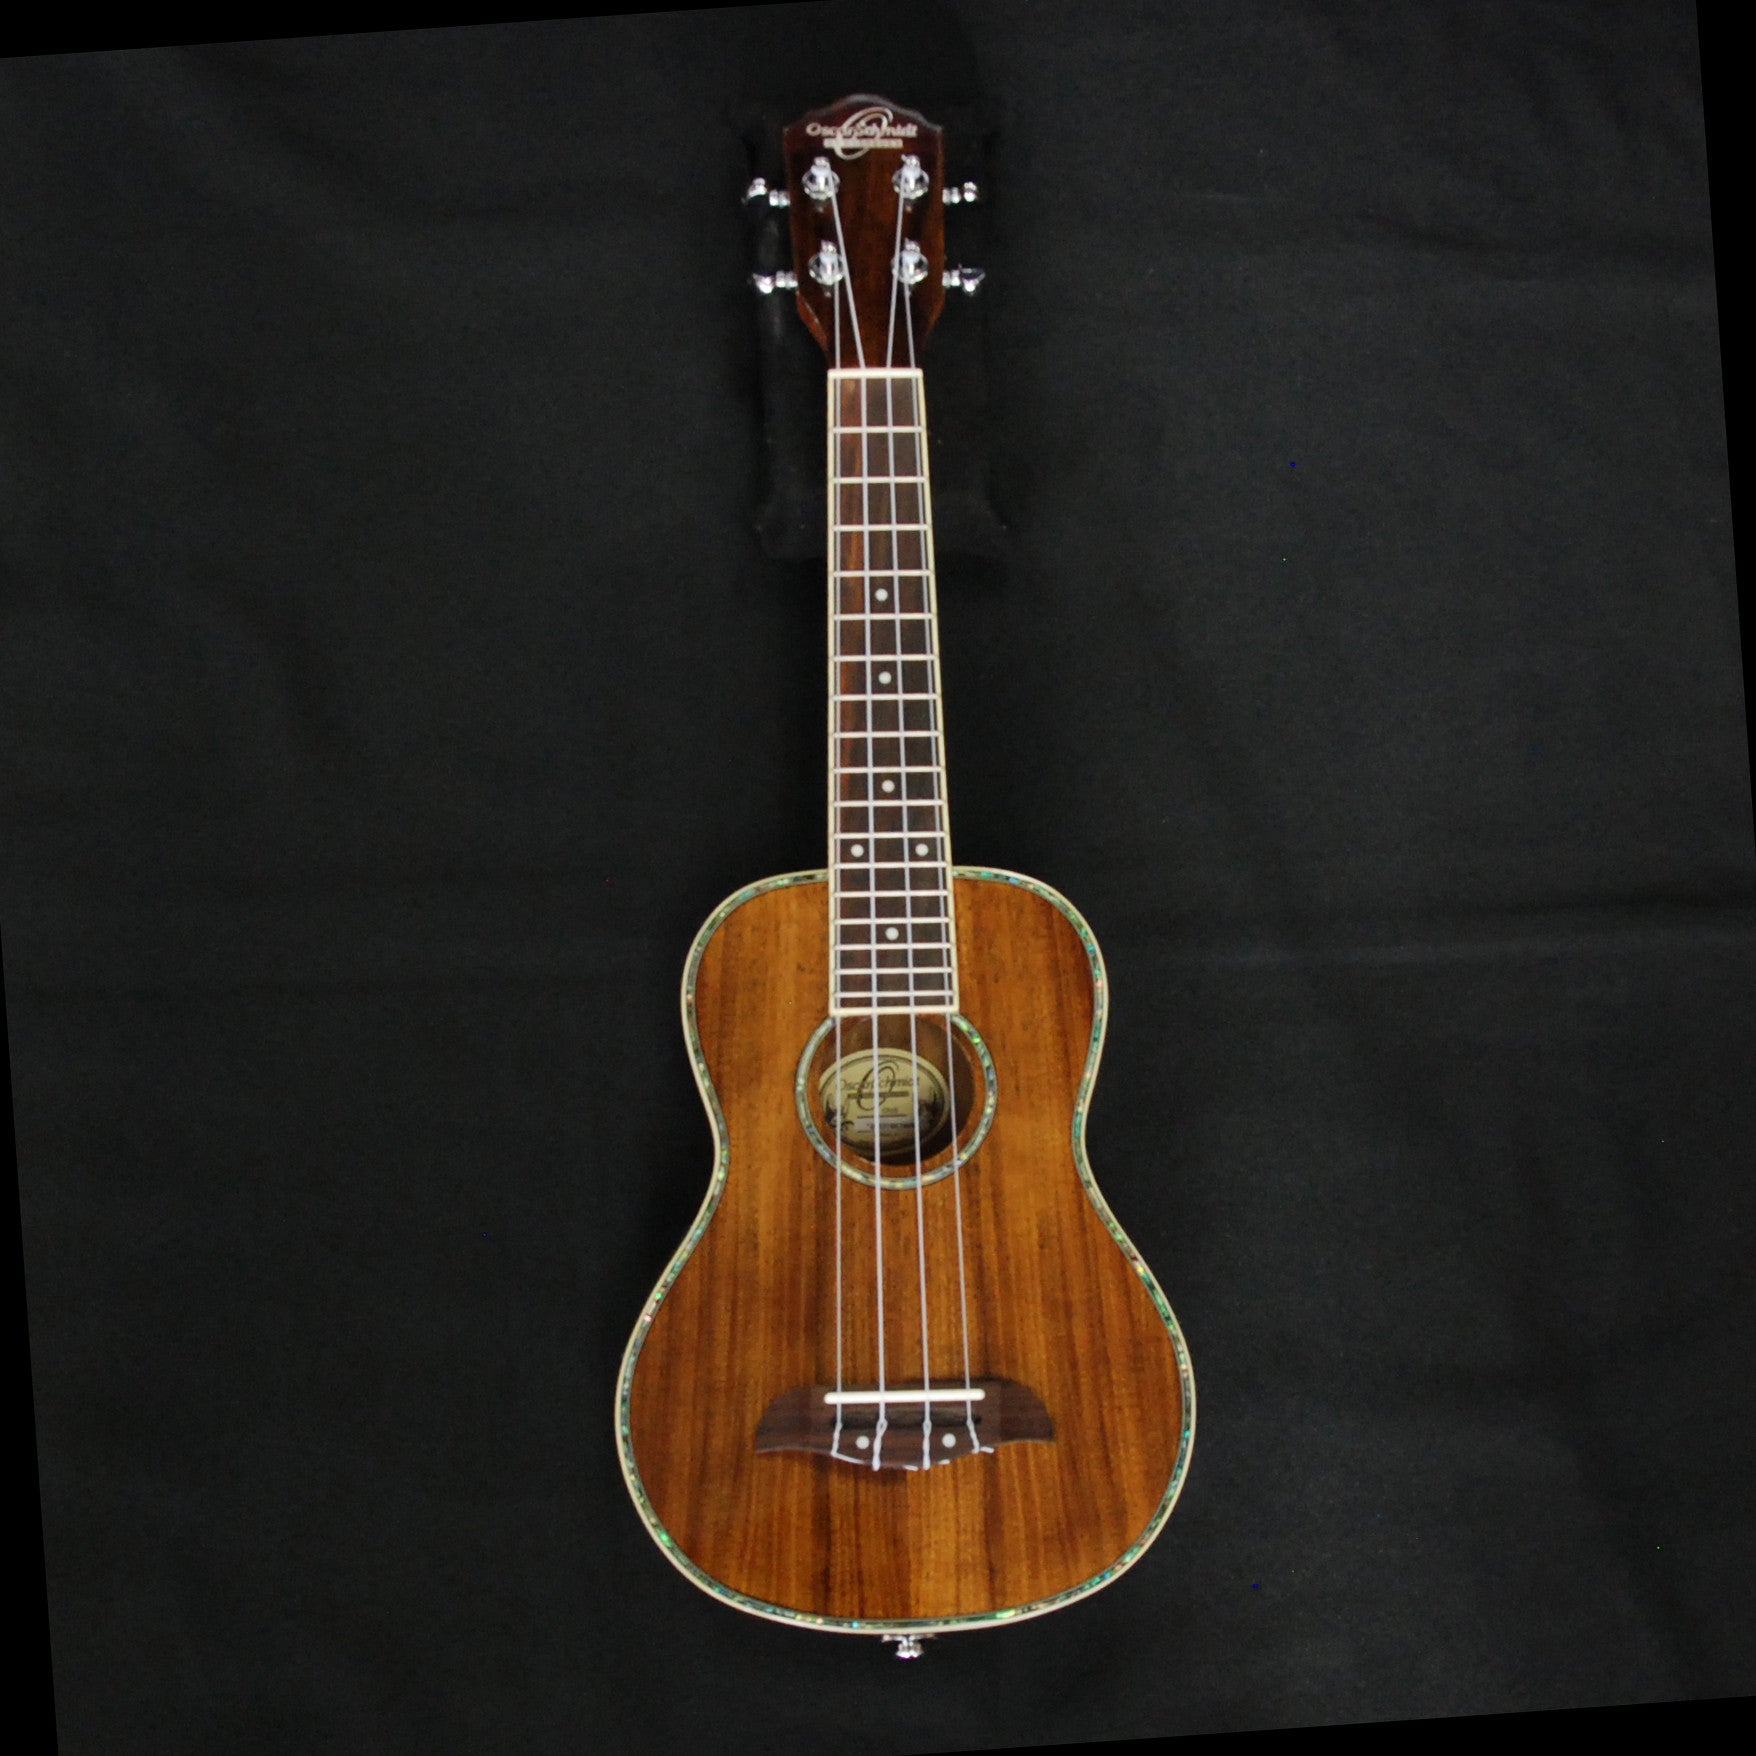 Shop online for Oscar Schmidt OU5E Concert Ukulele Koa today.  Now available for purchase from Midlothian Music of Orland Park, Illinois, USA